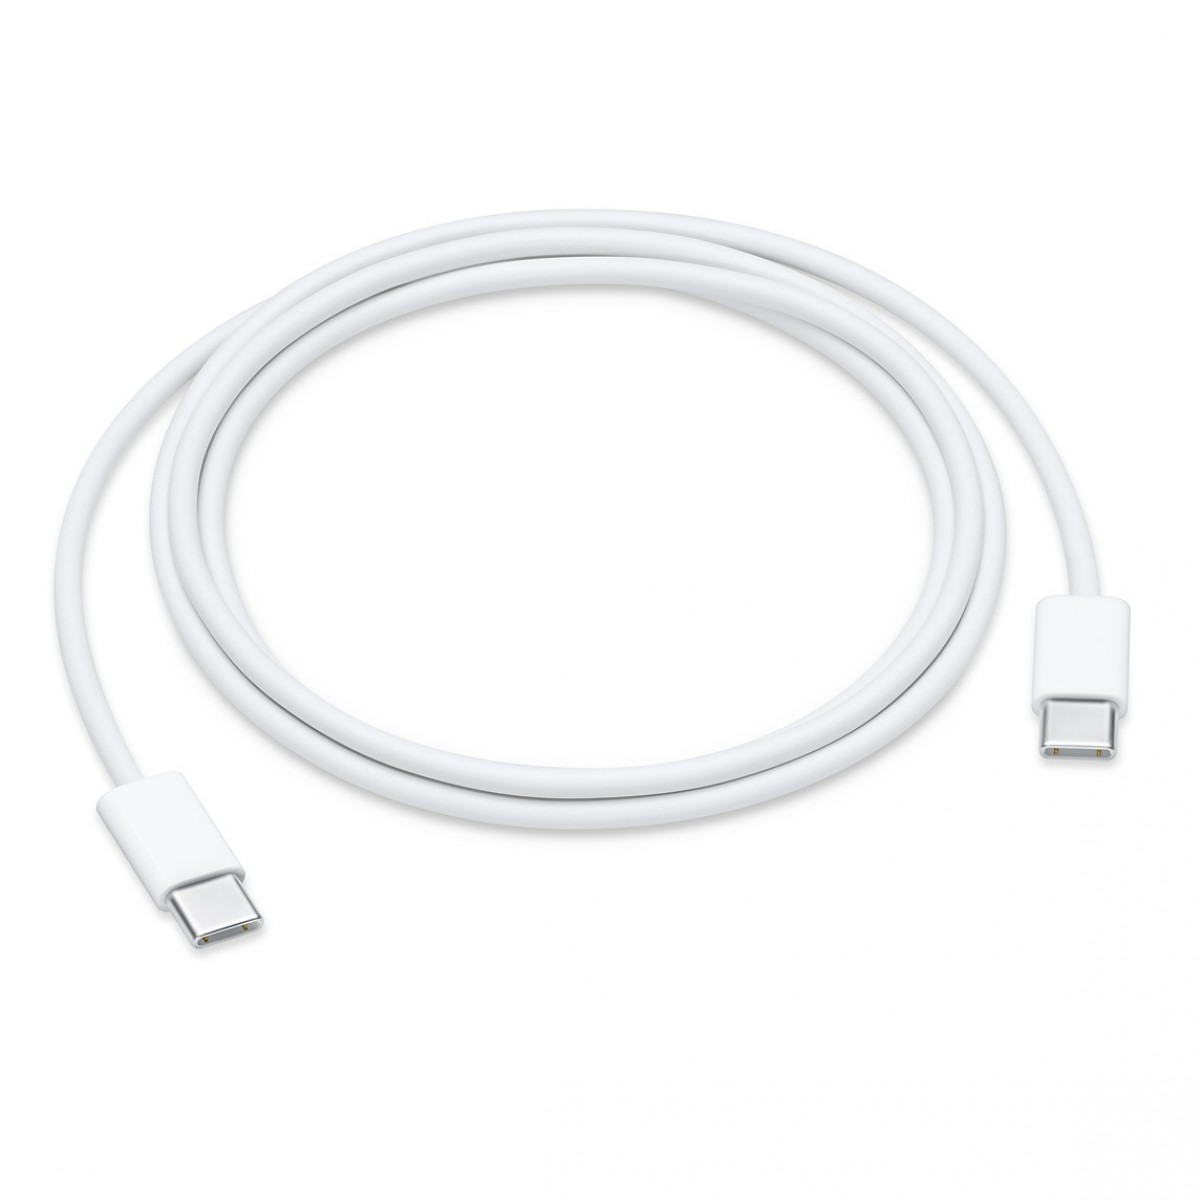 Apple Regular USB 2.0 Cable USB-C σε USB-C Λευκό 1m MUF72FE/A Retail